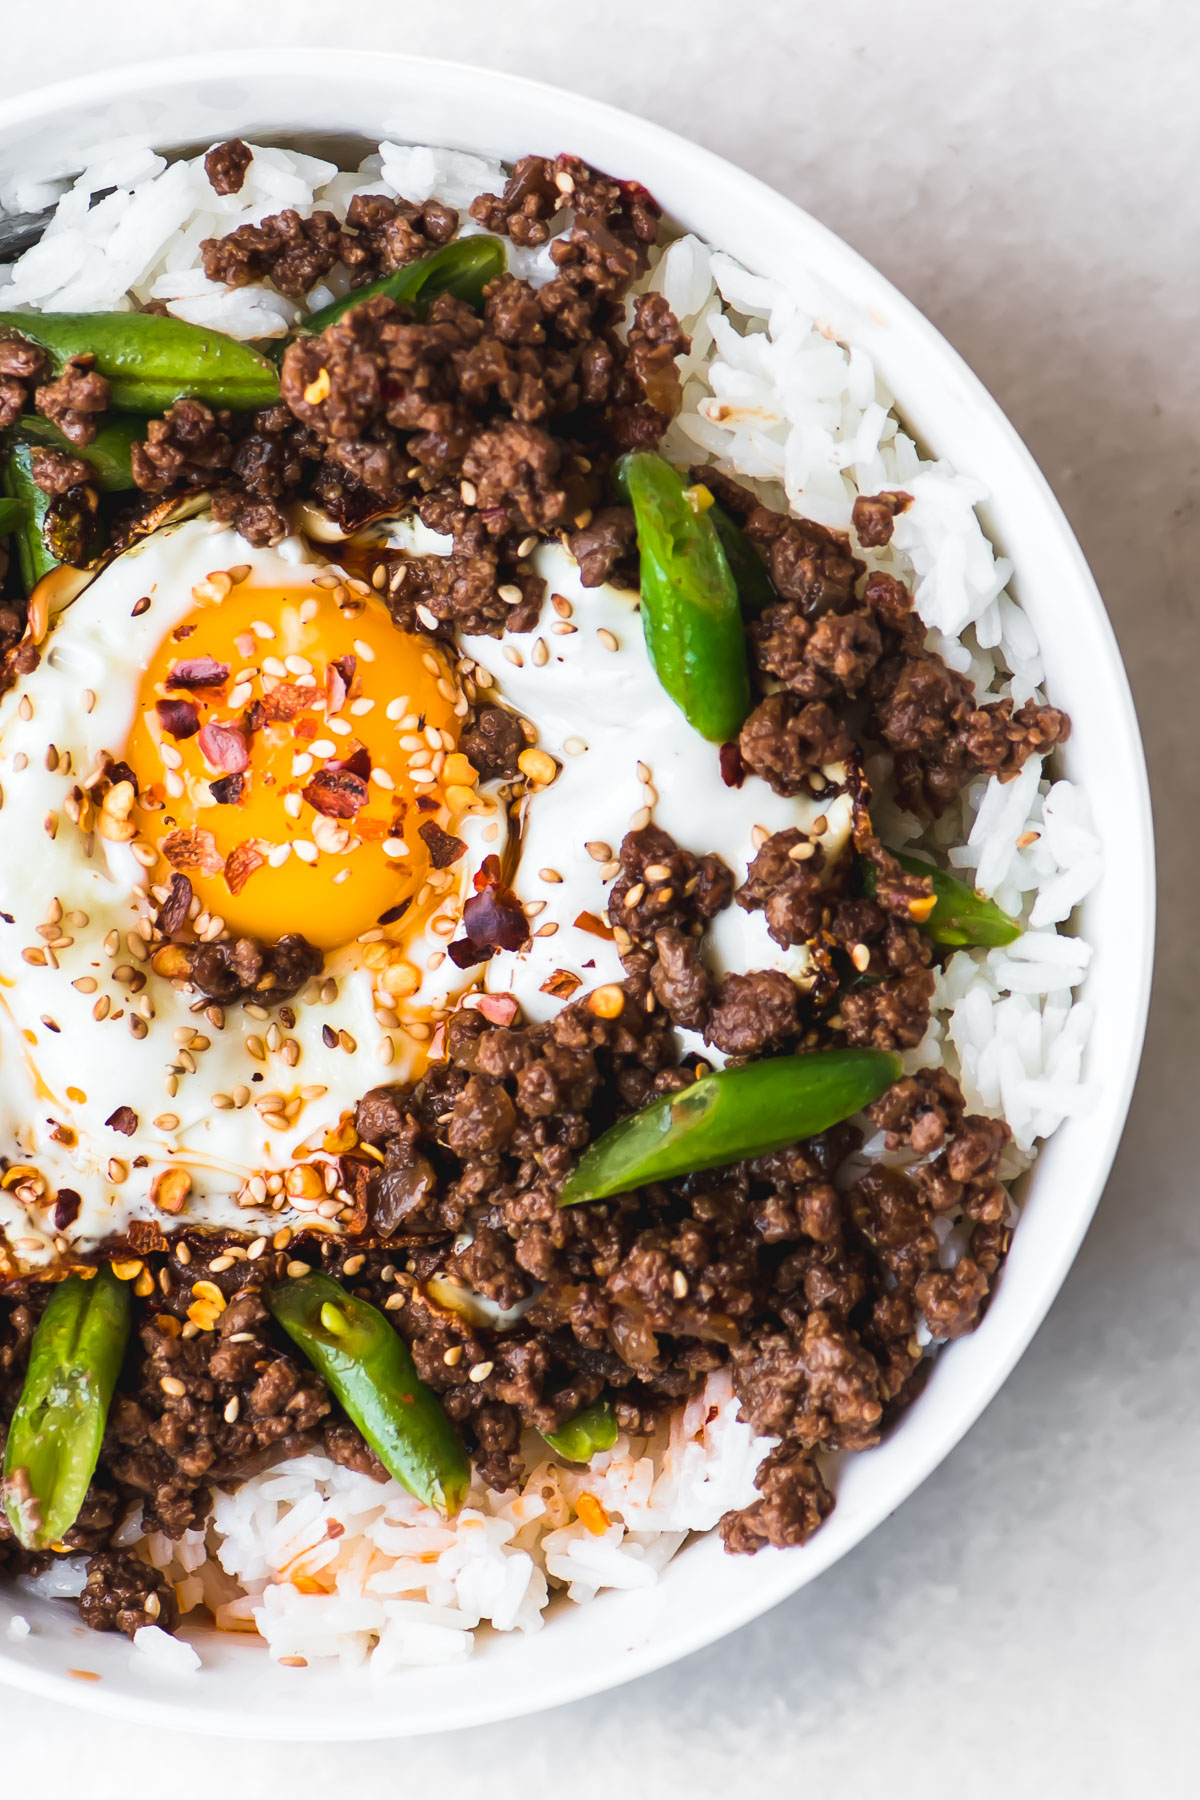 Korean rice bowl with a fried egg